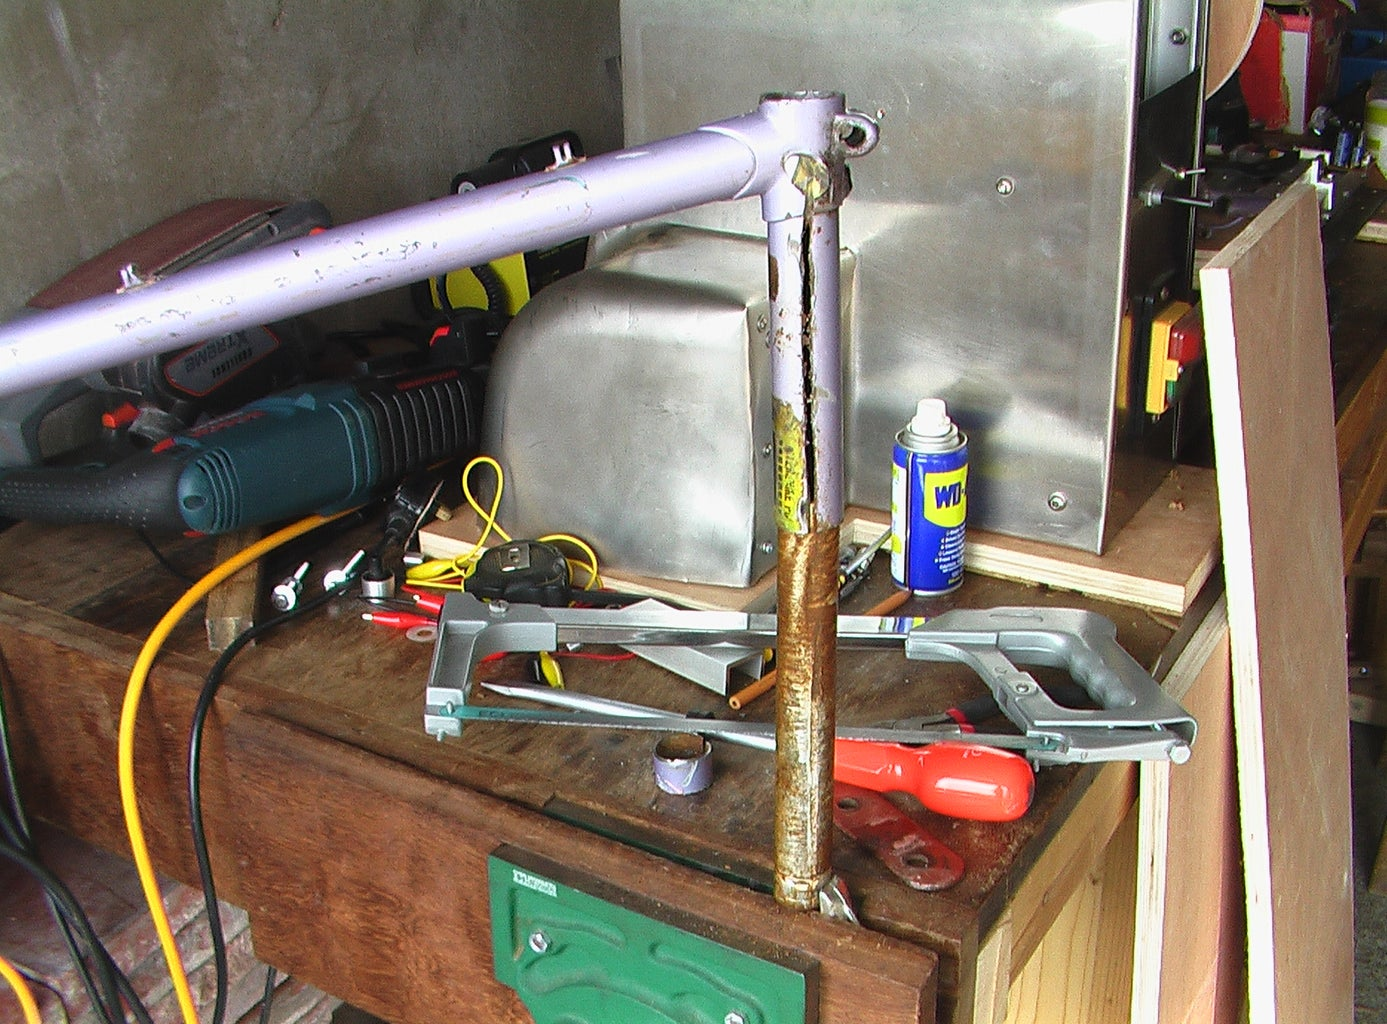 The Tool Rest